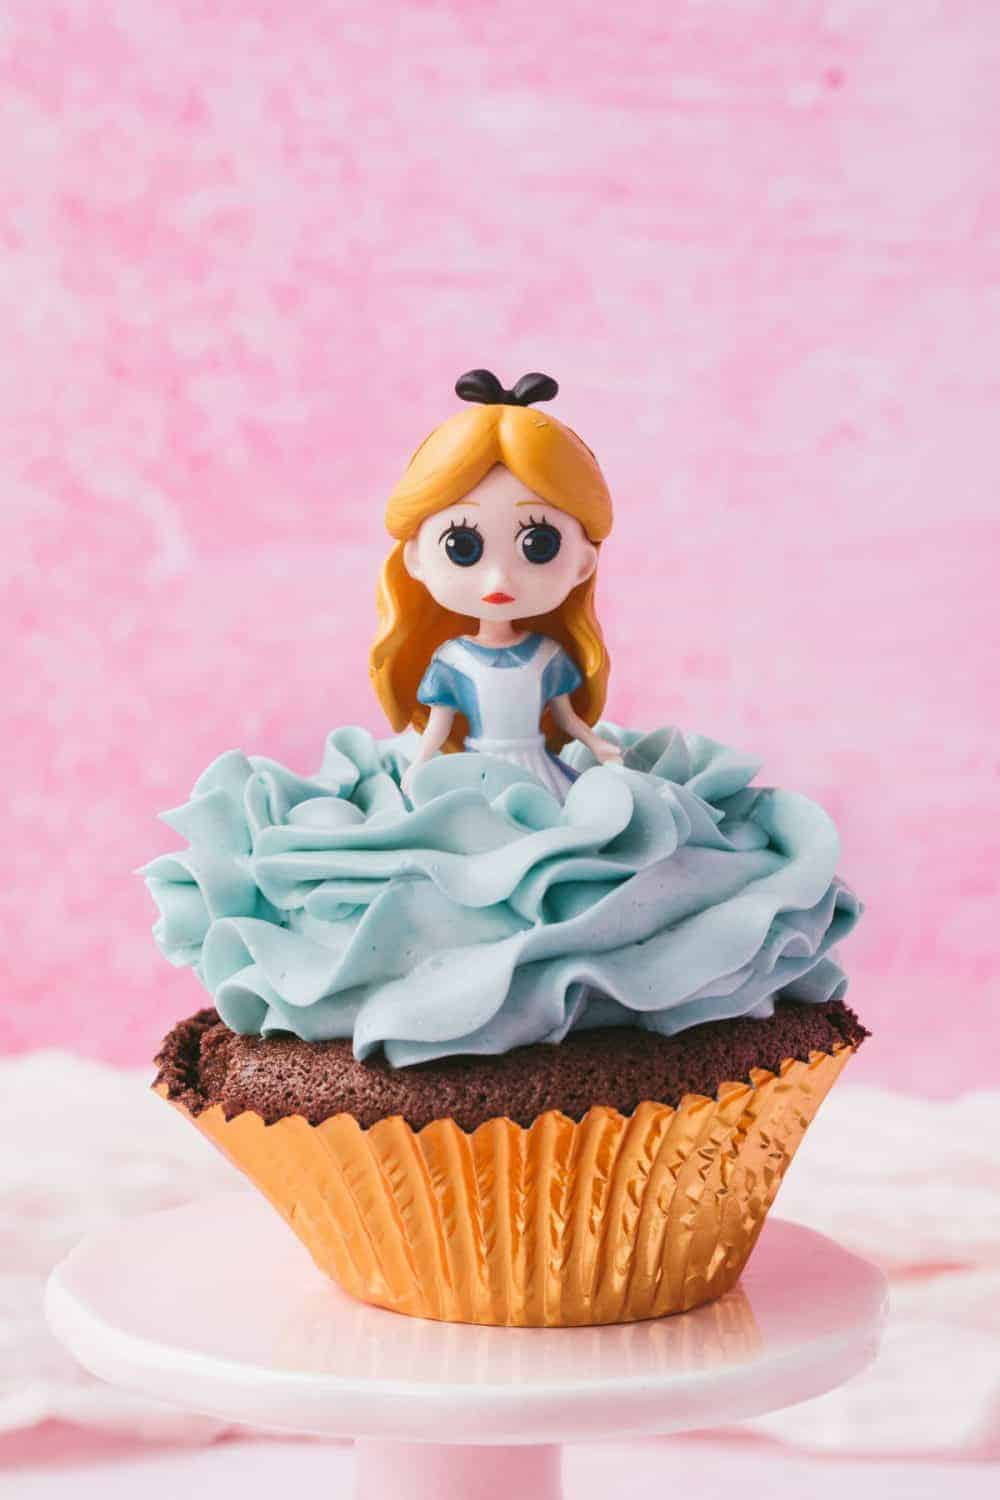 Alice in Wonderland cupcake topper on a chocolate cupcake with blue buttercream frosting.